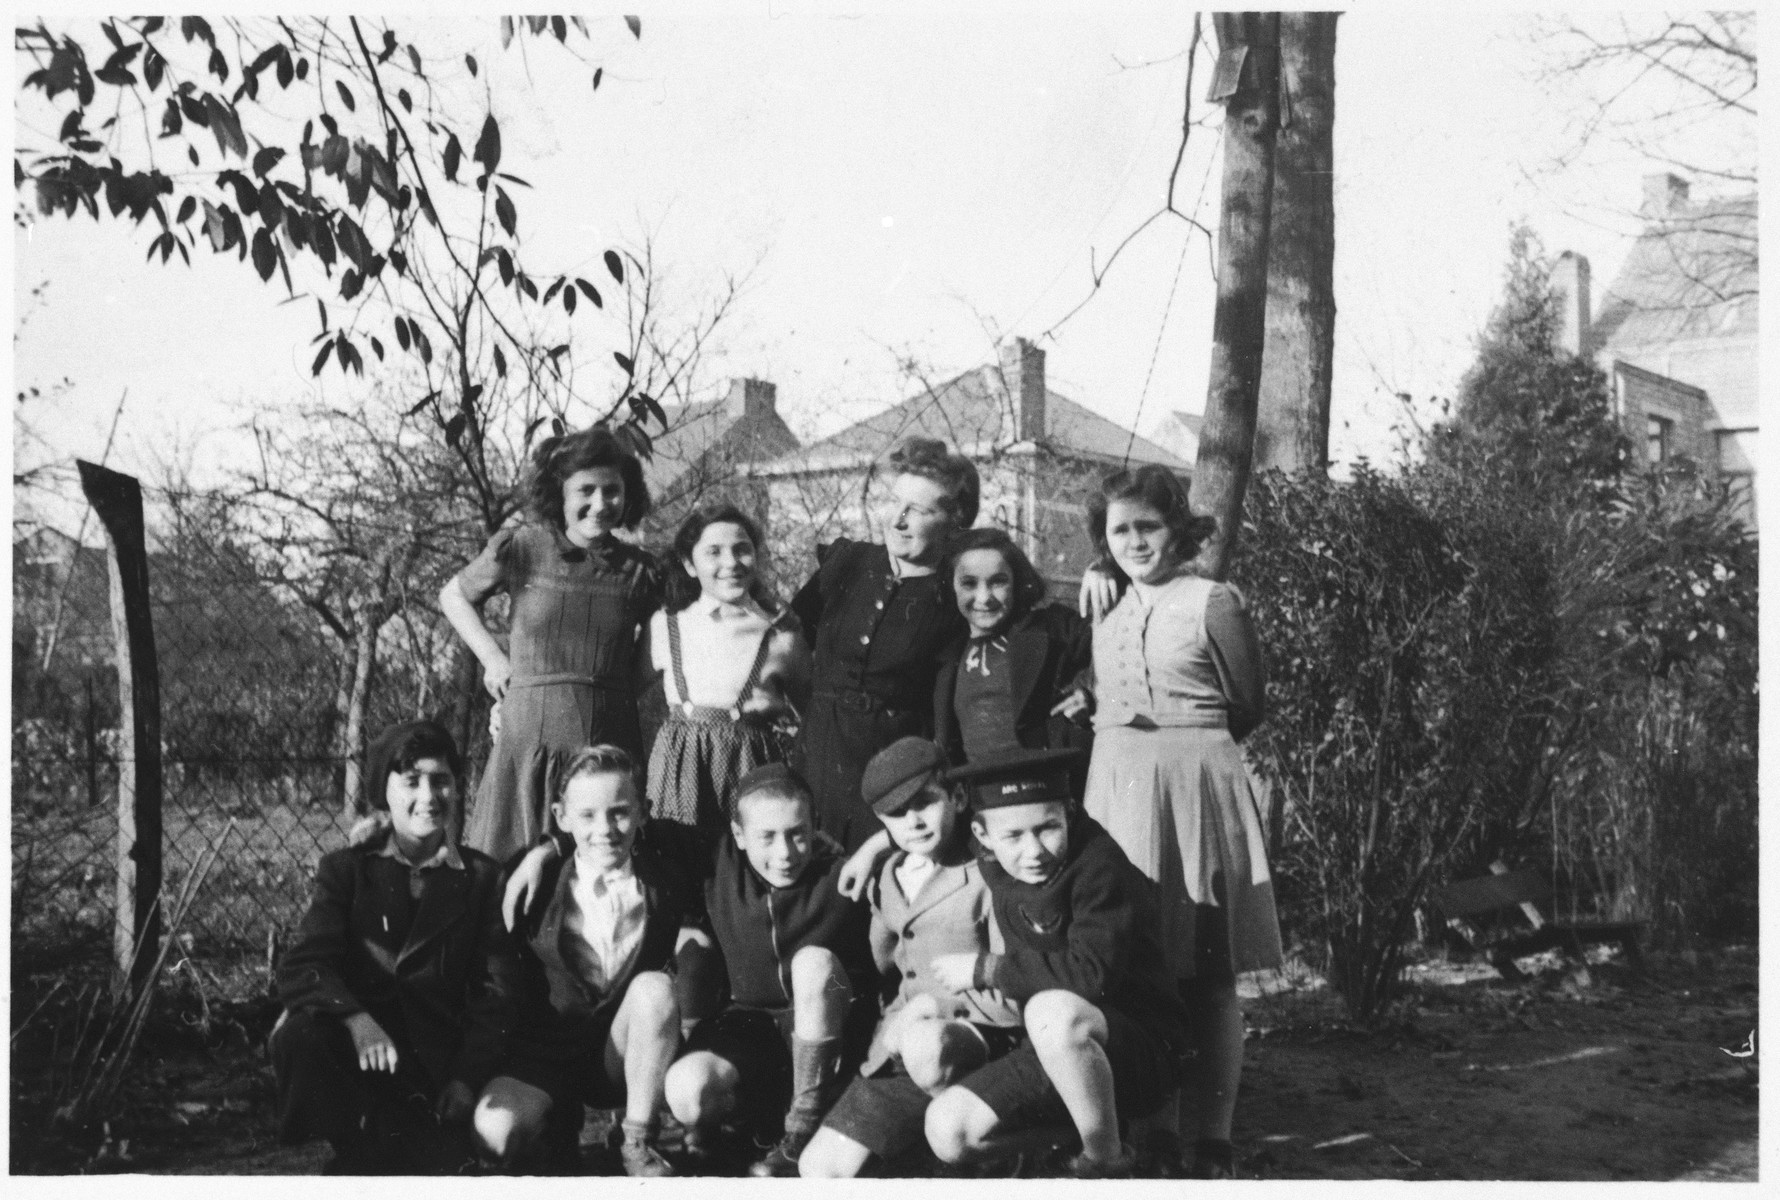 A group of children pose outside in the garden of the Mariaburg children's home.  Seated in front center is Alfred Friedmann.  Standing second from rightr is Binchen Gelbart.